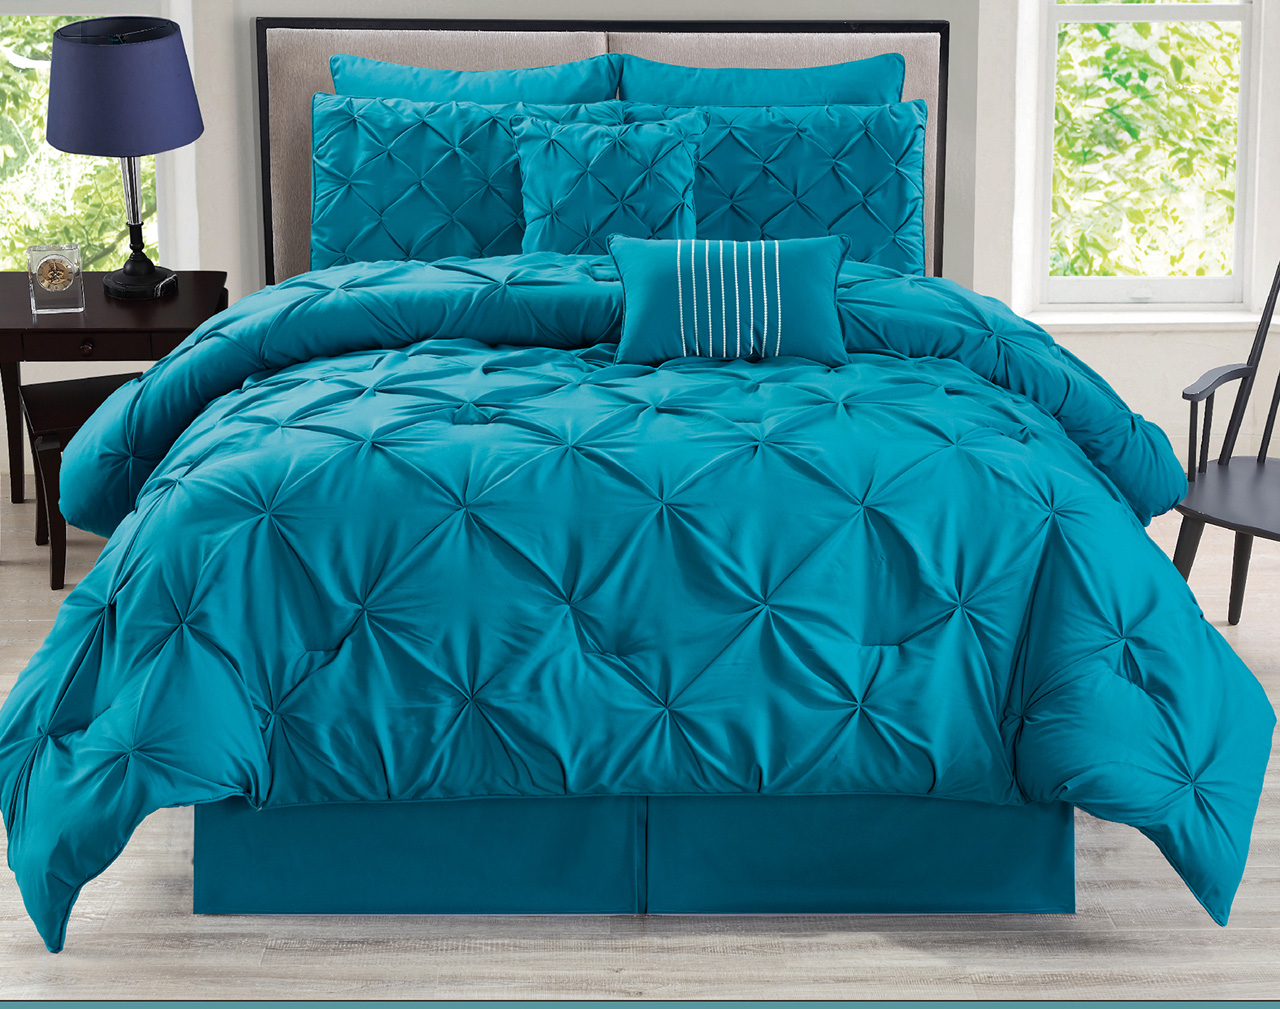 awesome kids sheets teal on size bedding sets queen of target blue horrible grey bed boys beautiful for and frightening set full comforter